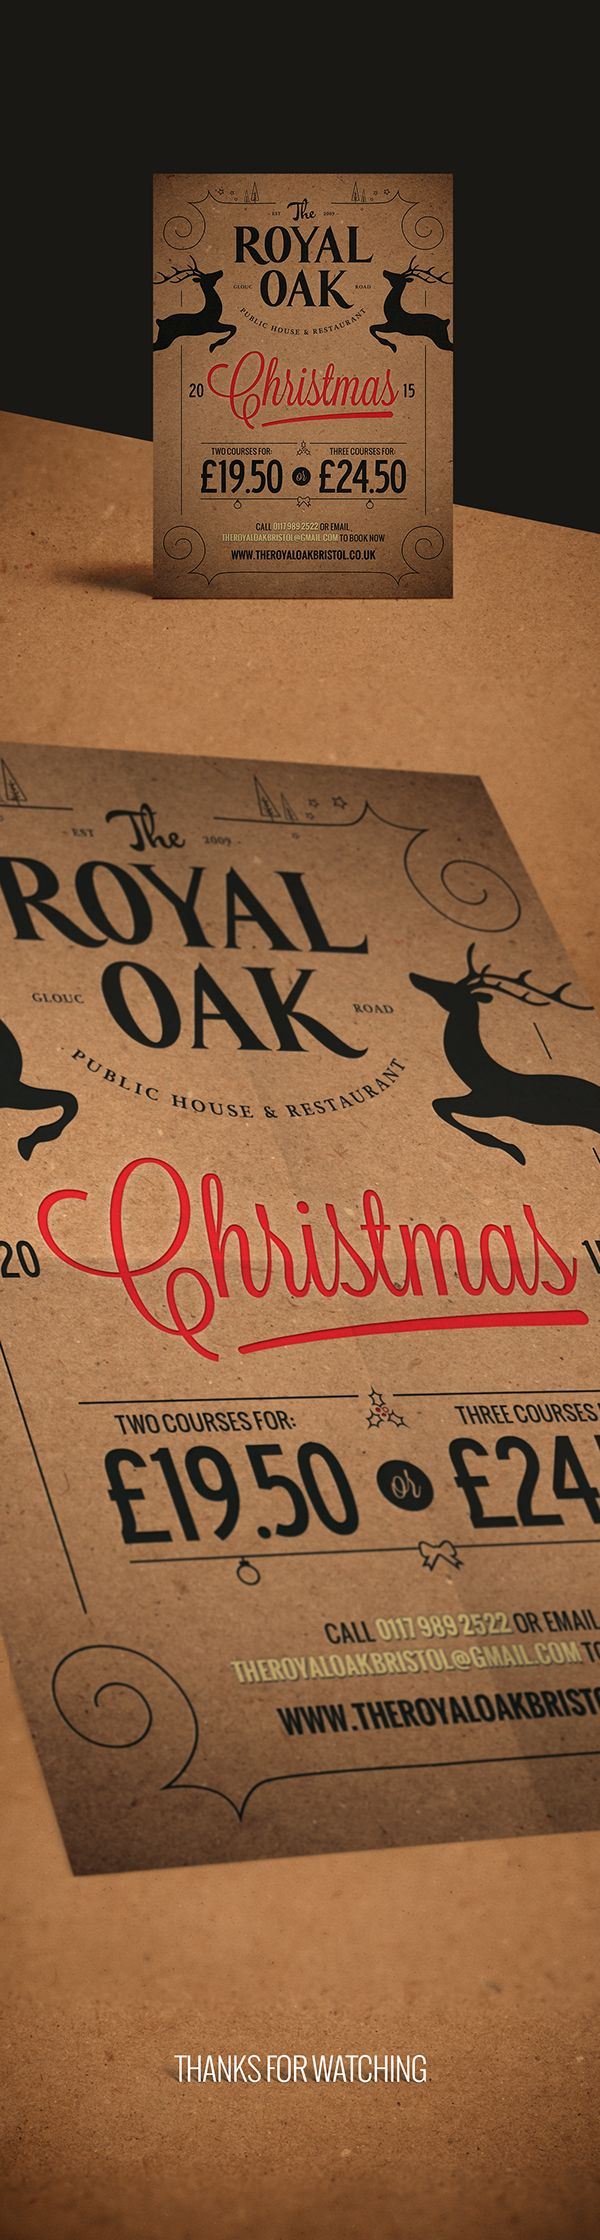 The Royal Oak Christmas 2015 Flyer